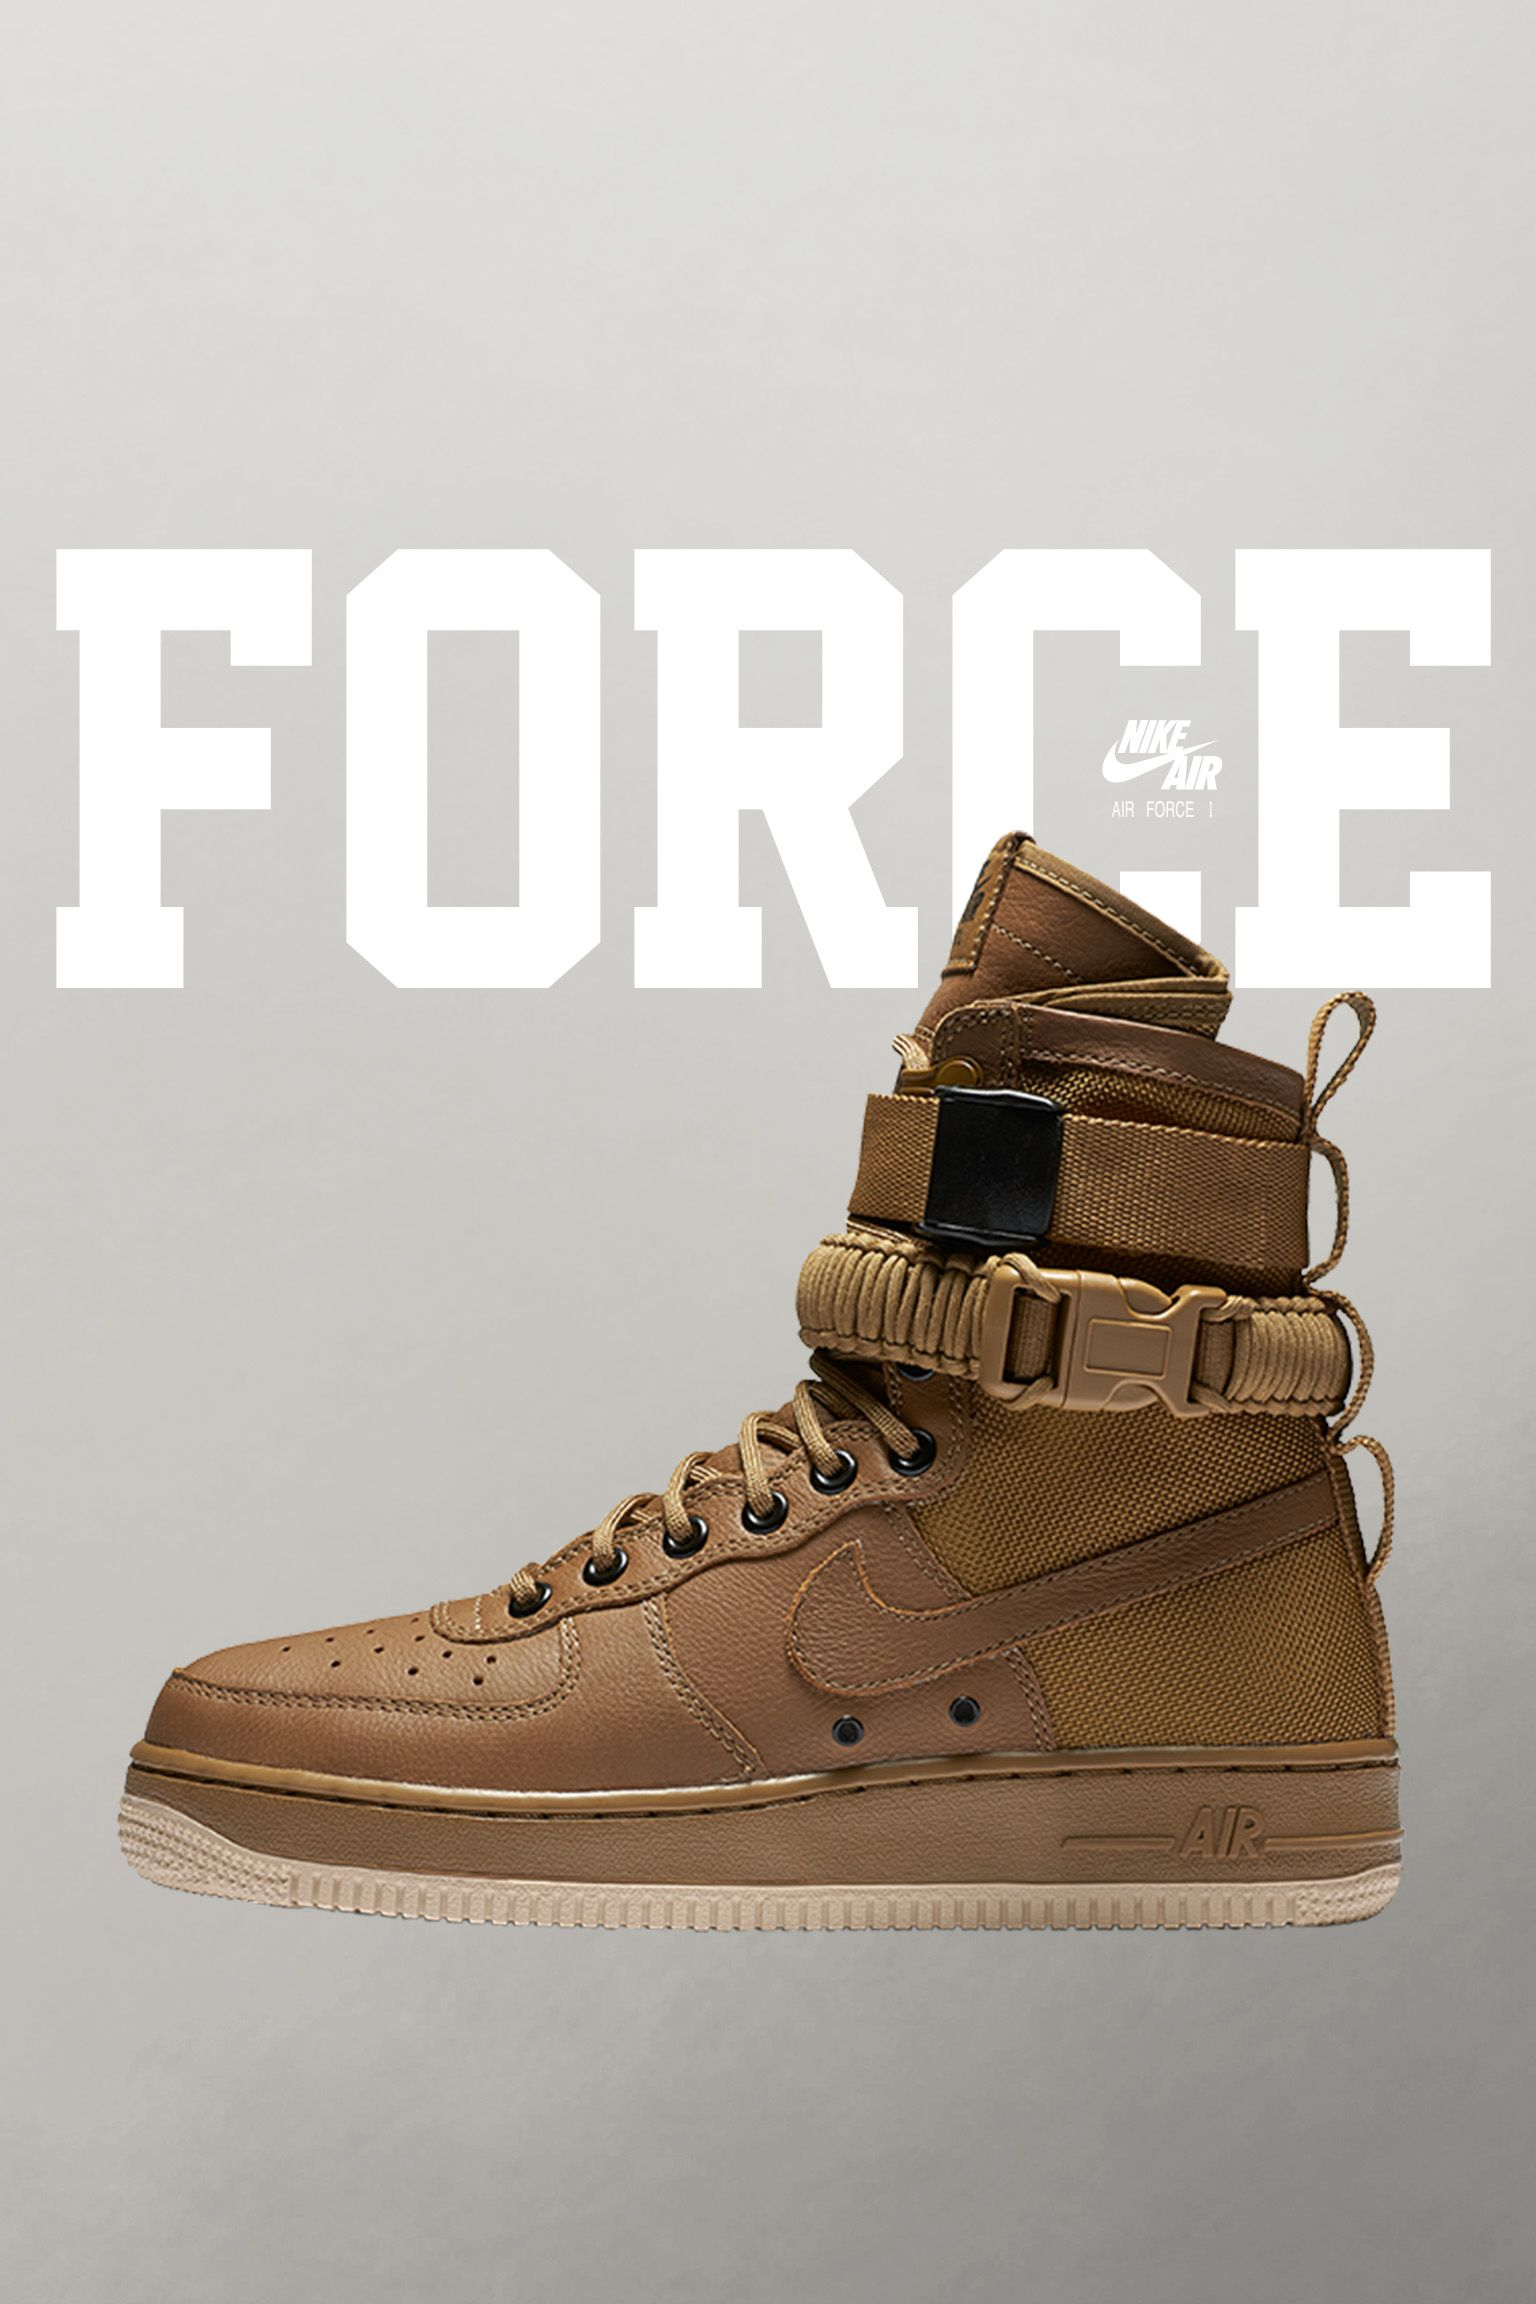 Women's Nike Special Field Air Force 1 'Golden Beige'. Release Date